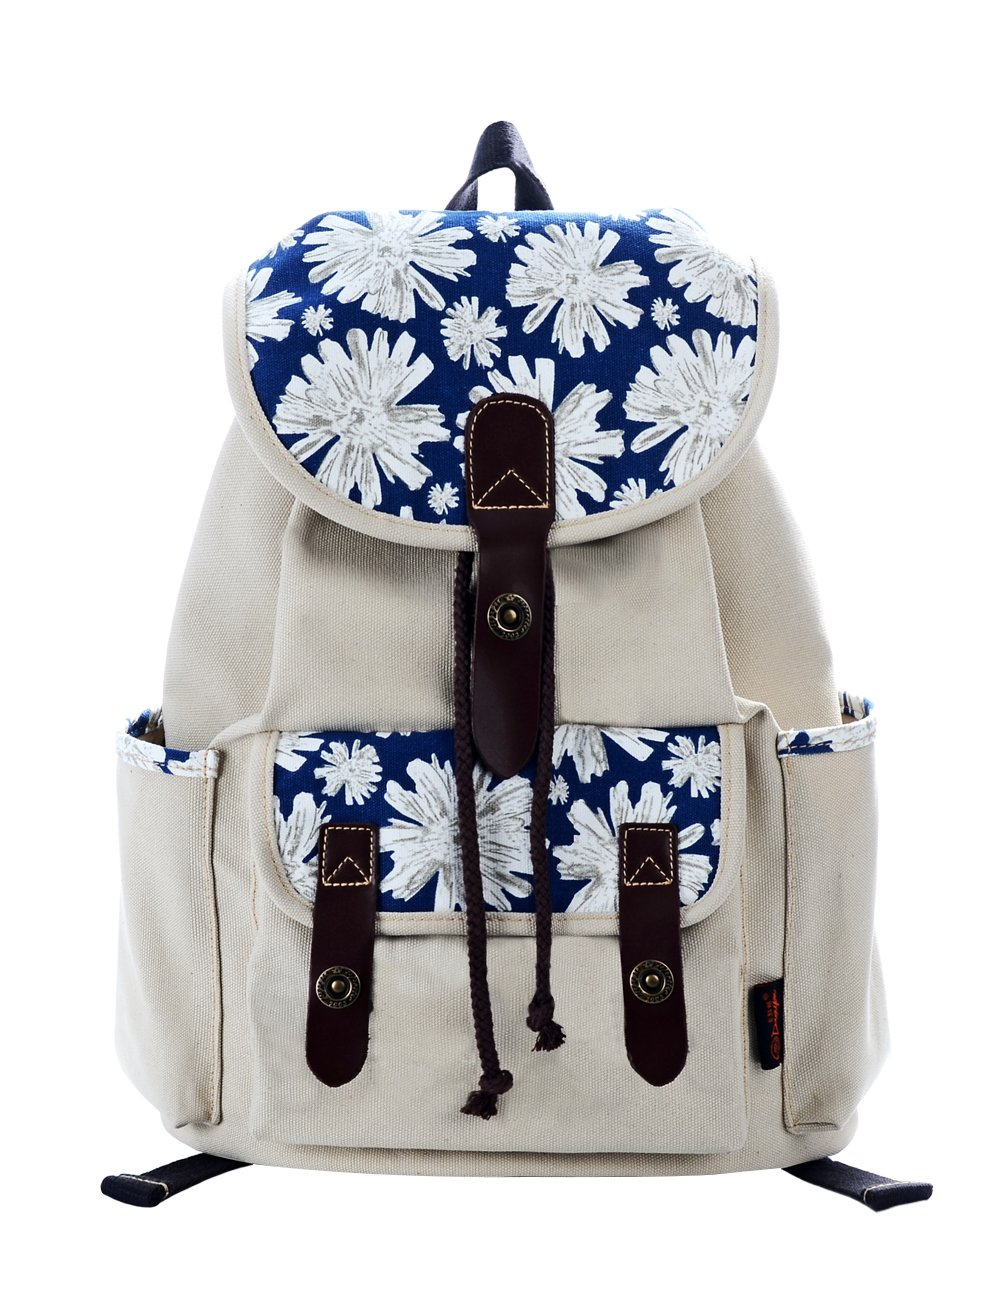 Douguyan Women's Canvas Backpack College Casual Rucksack Daypacks Travel Backpack Purse 137 Blue